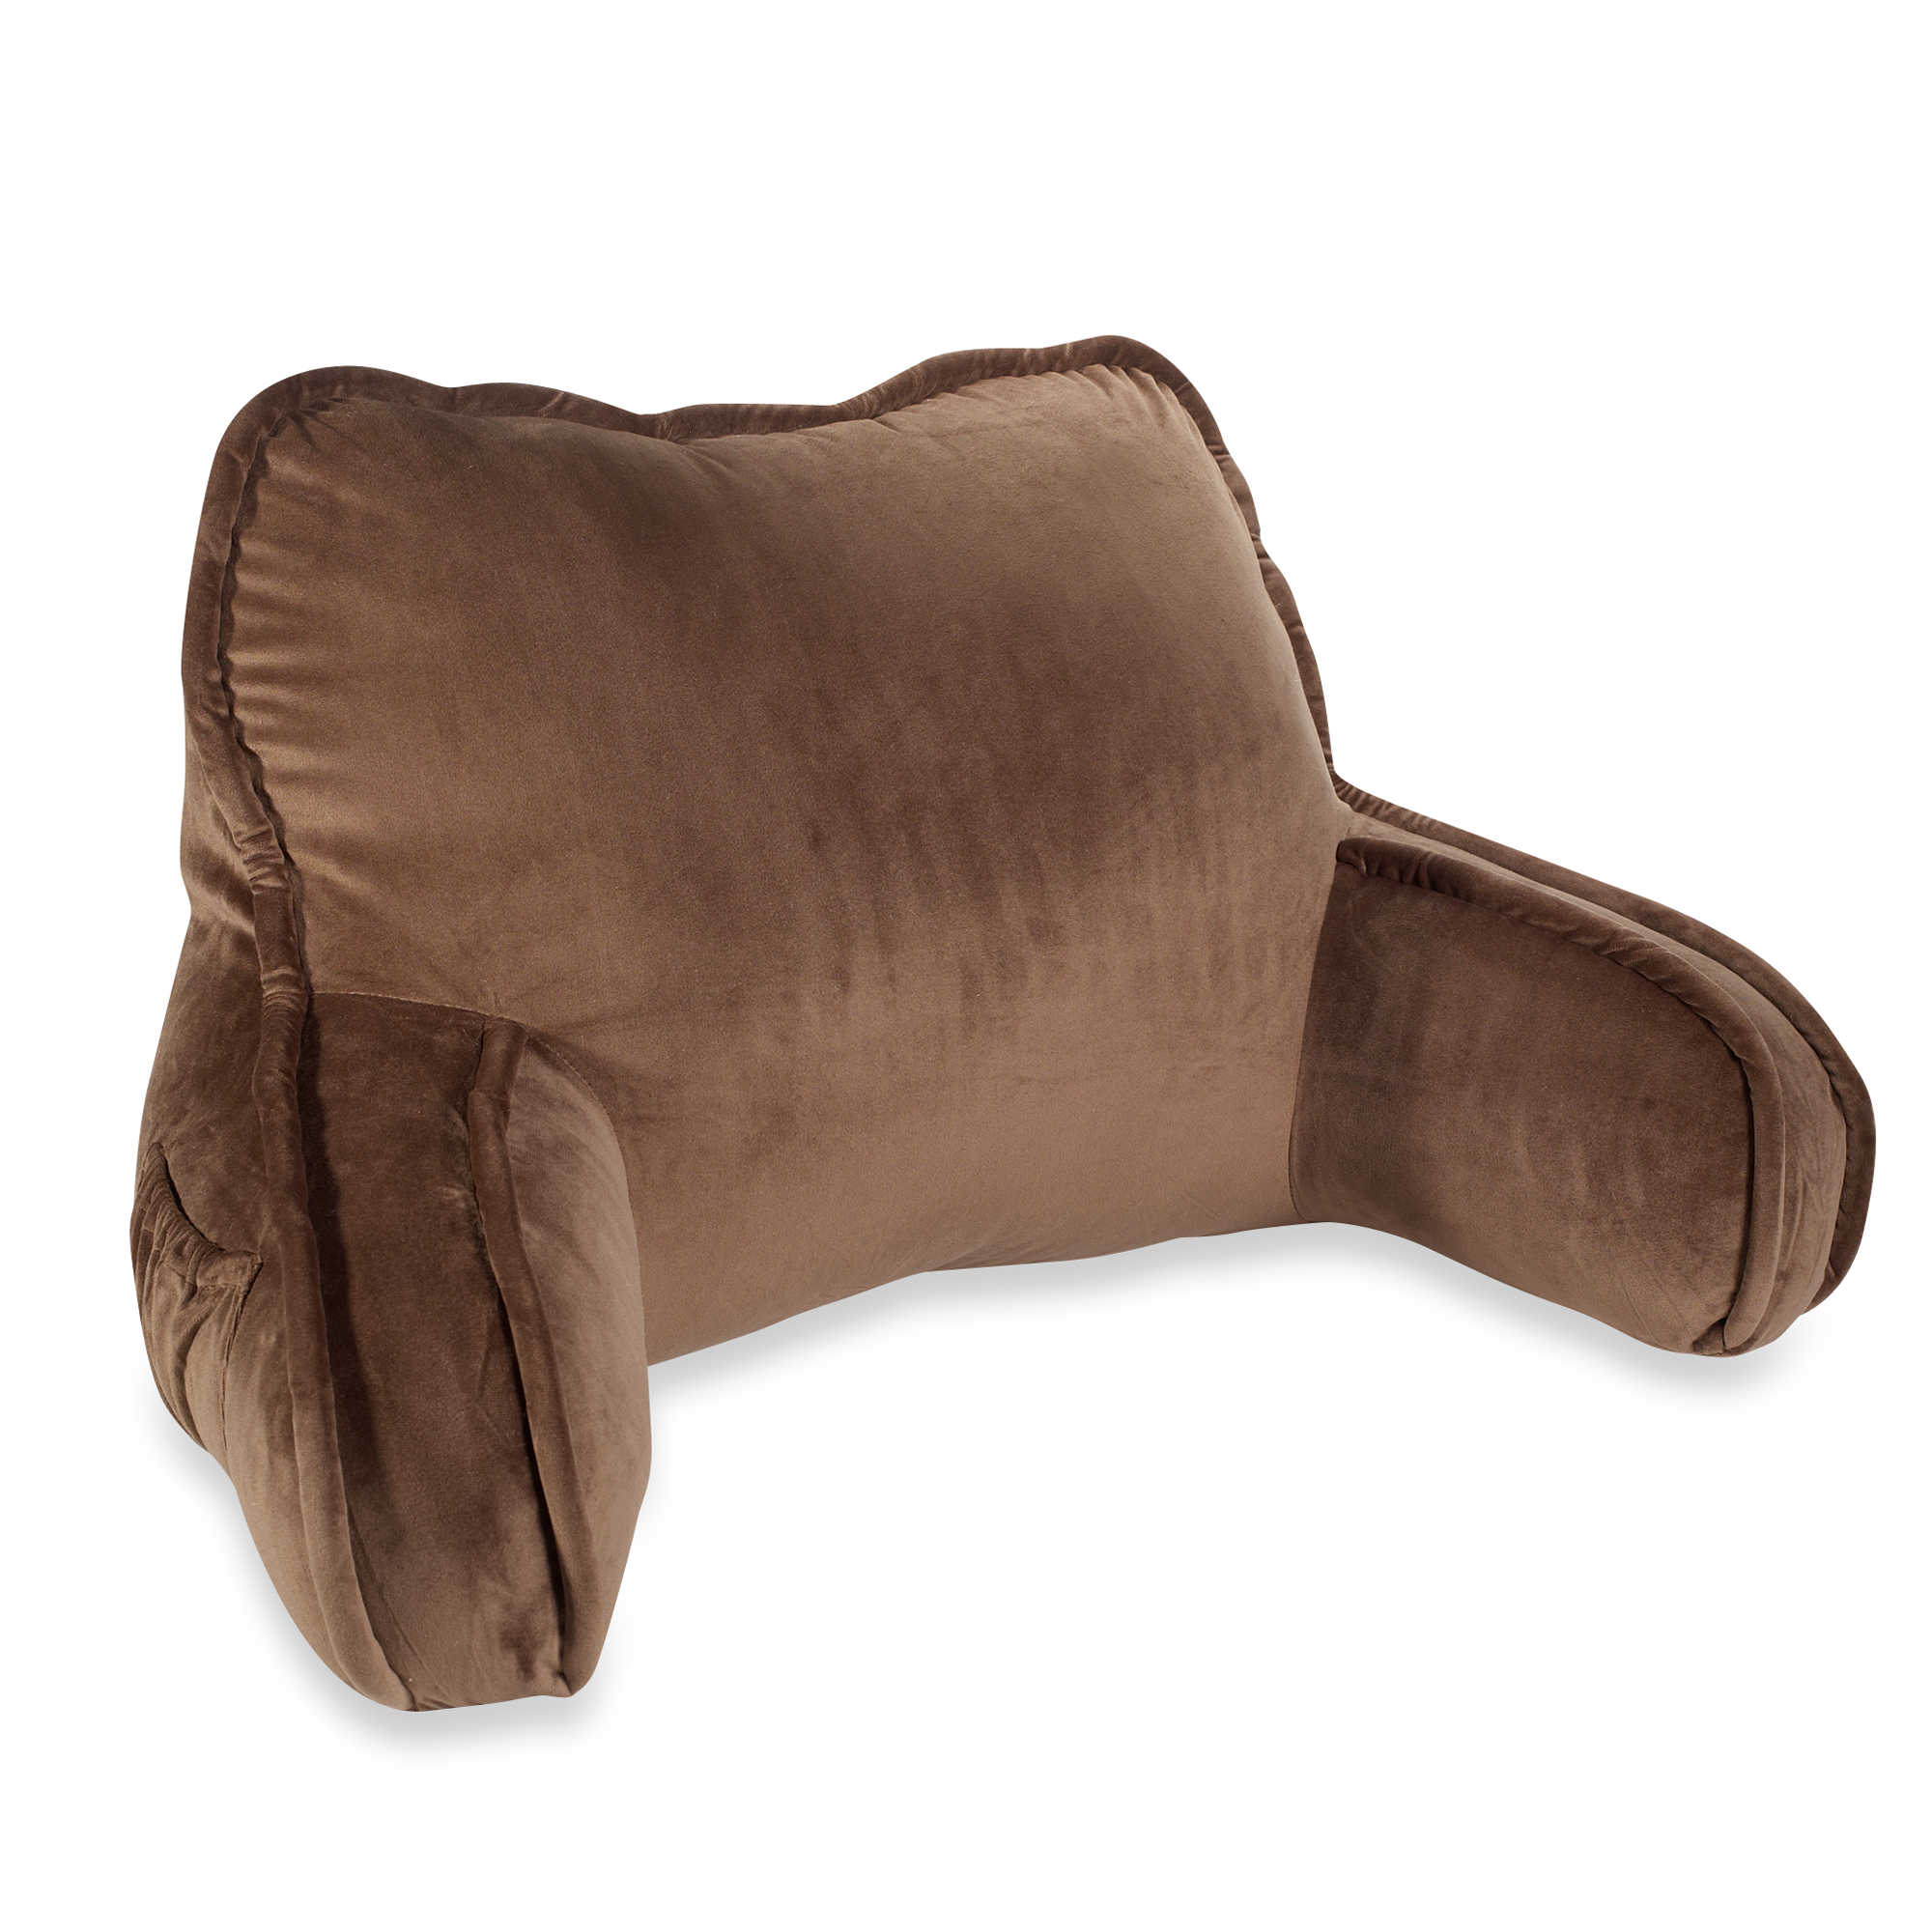 Sit Up Pillow Innovative Stuff That You Must Have